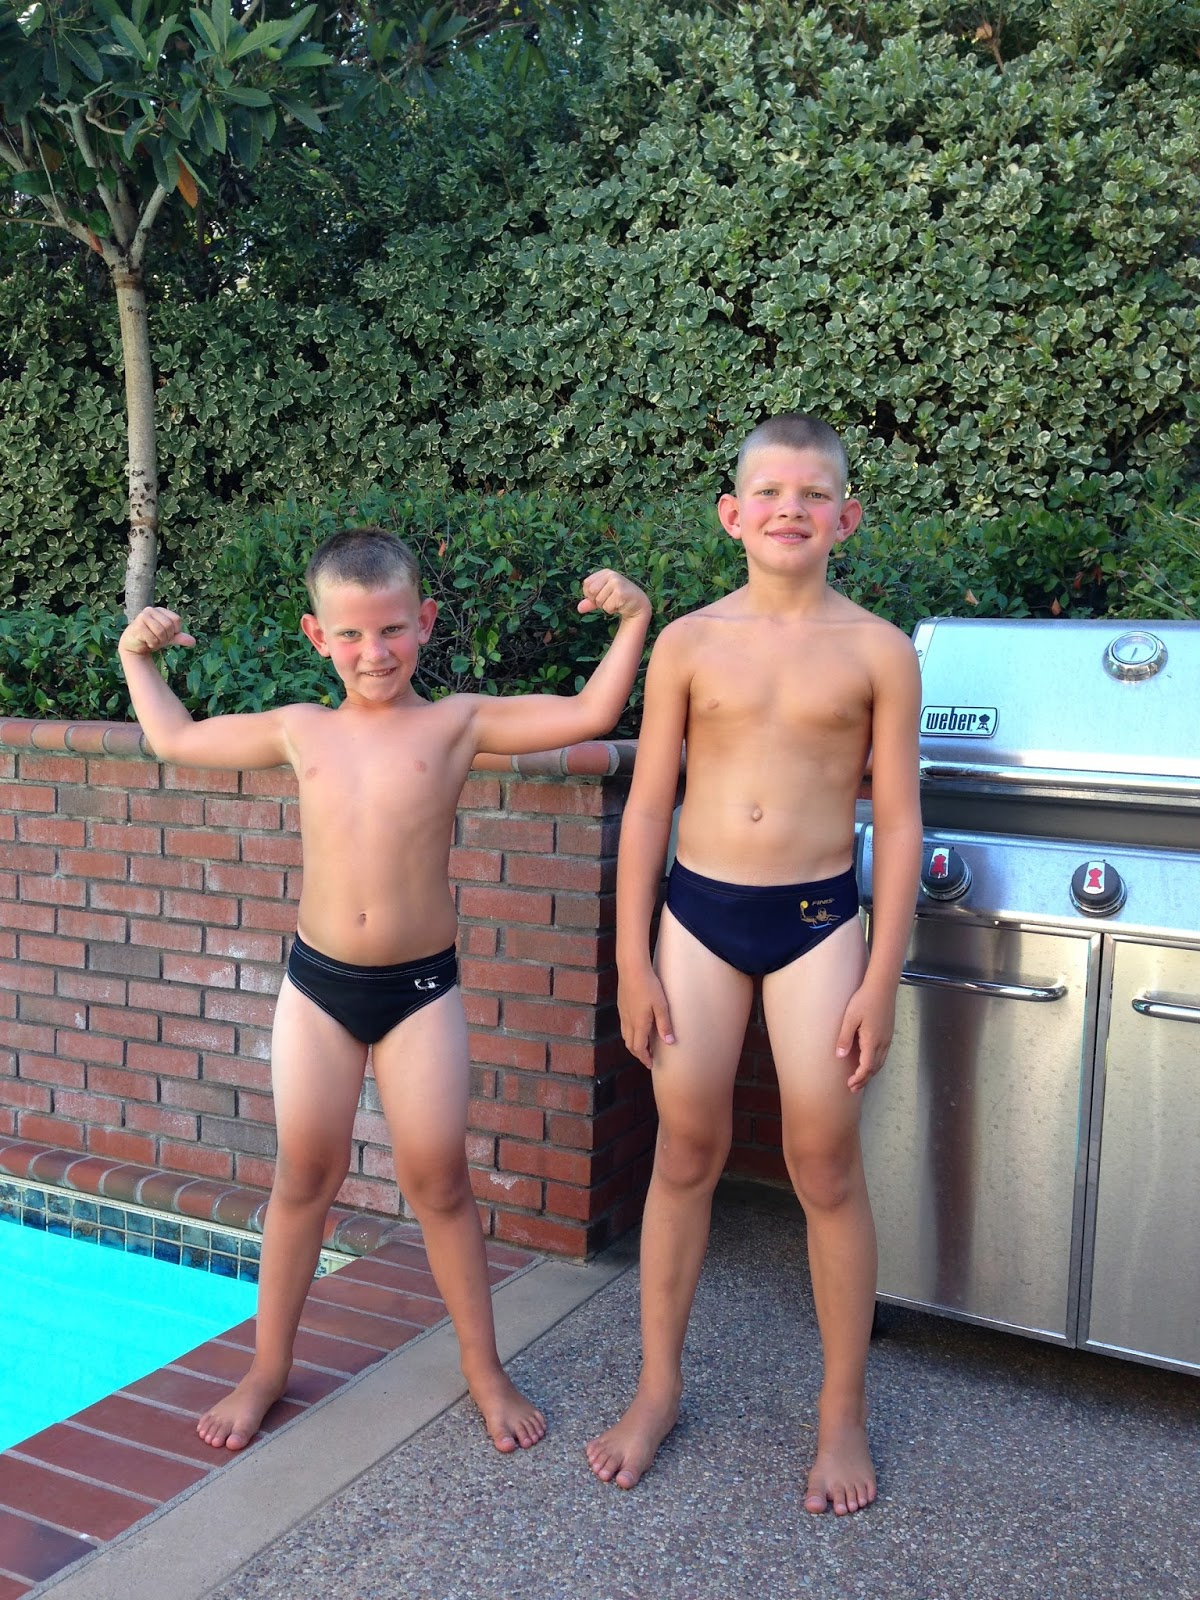 More than a mom: August 2013speedo boy